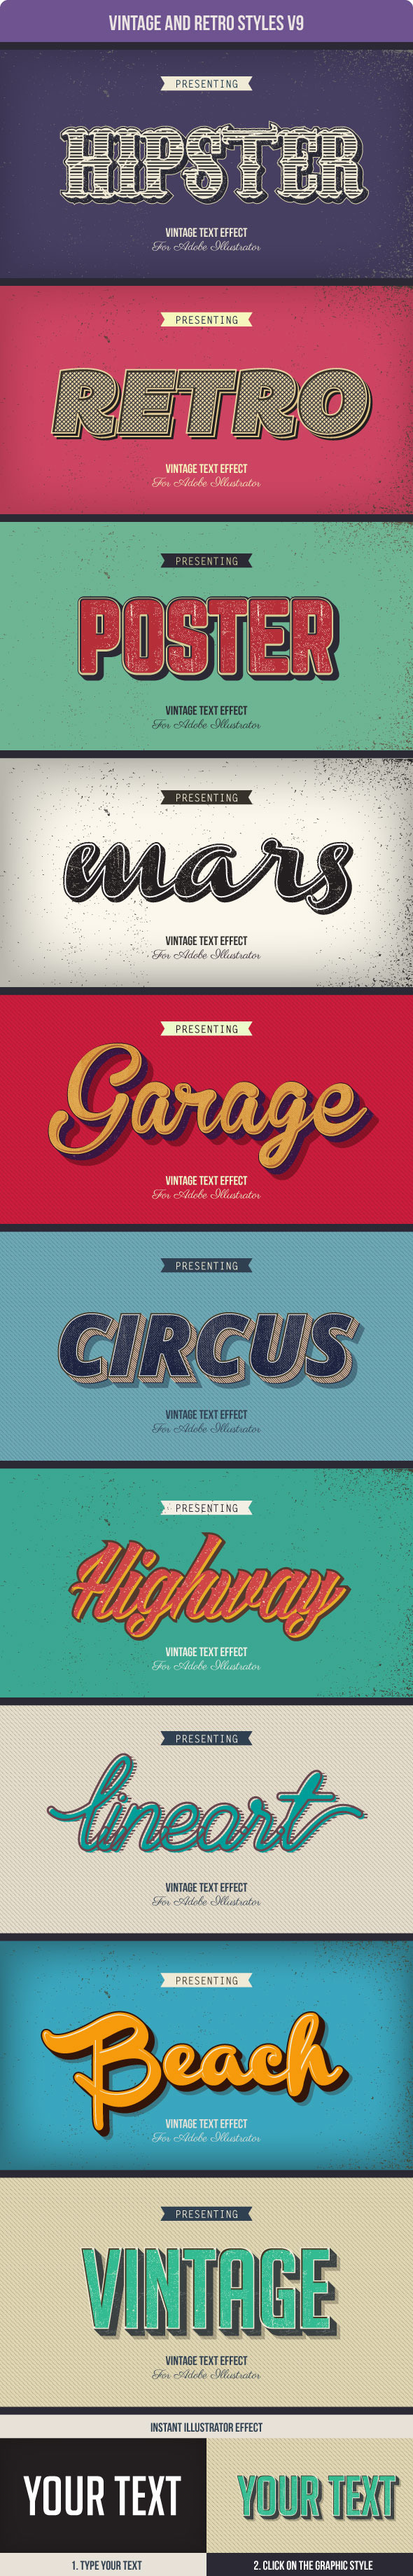 GraphicRiver Vintage and Retro Styles V9 10981418